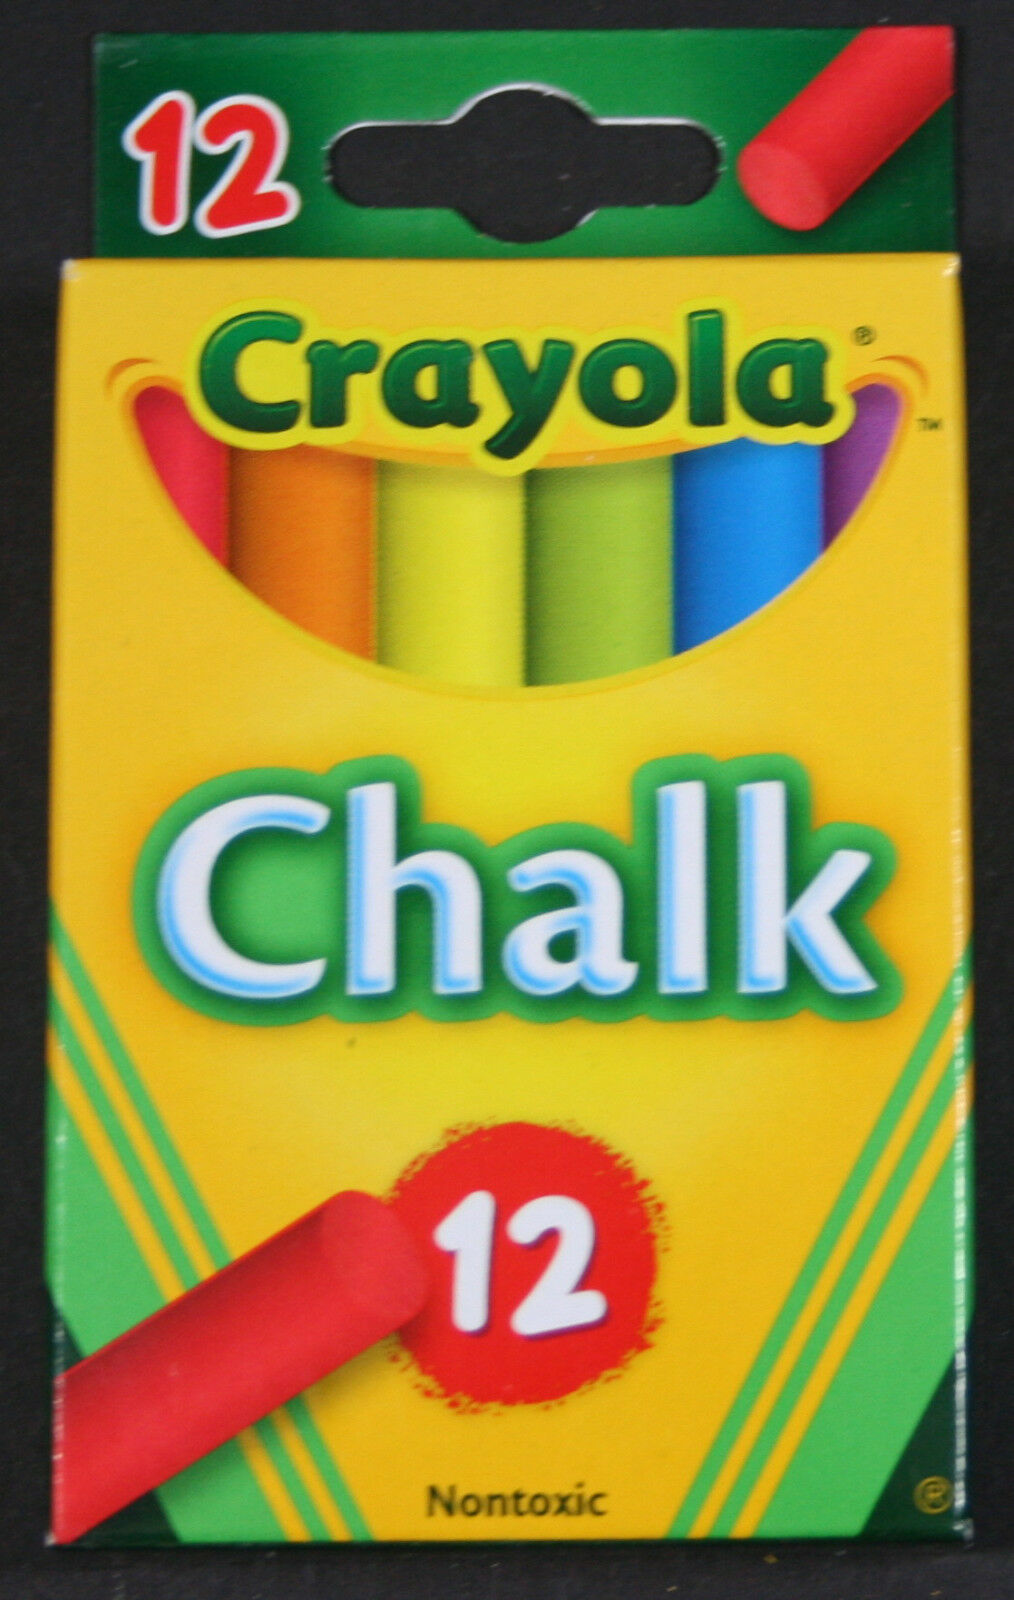 Crayola 51-0816 Colored Chalk Assorted 12 Count